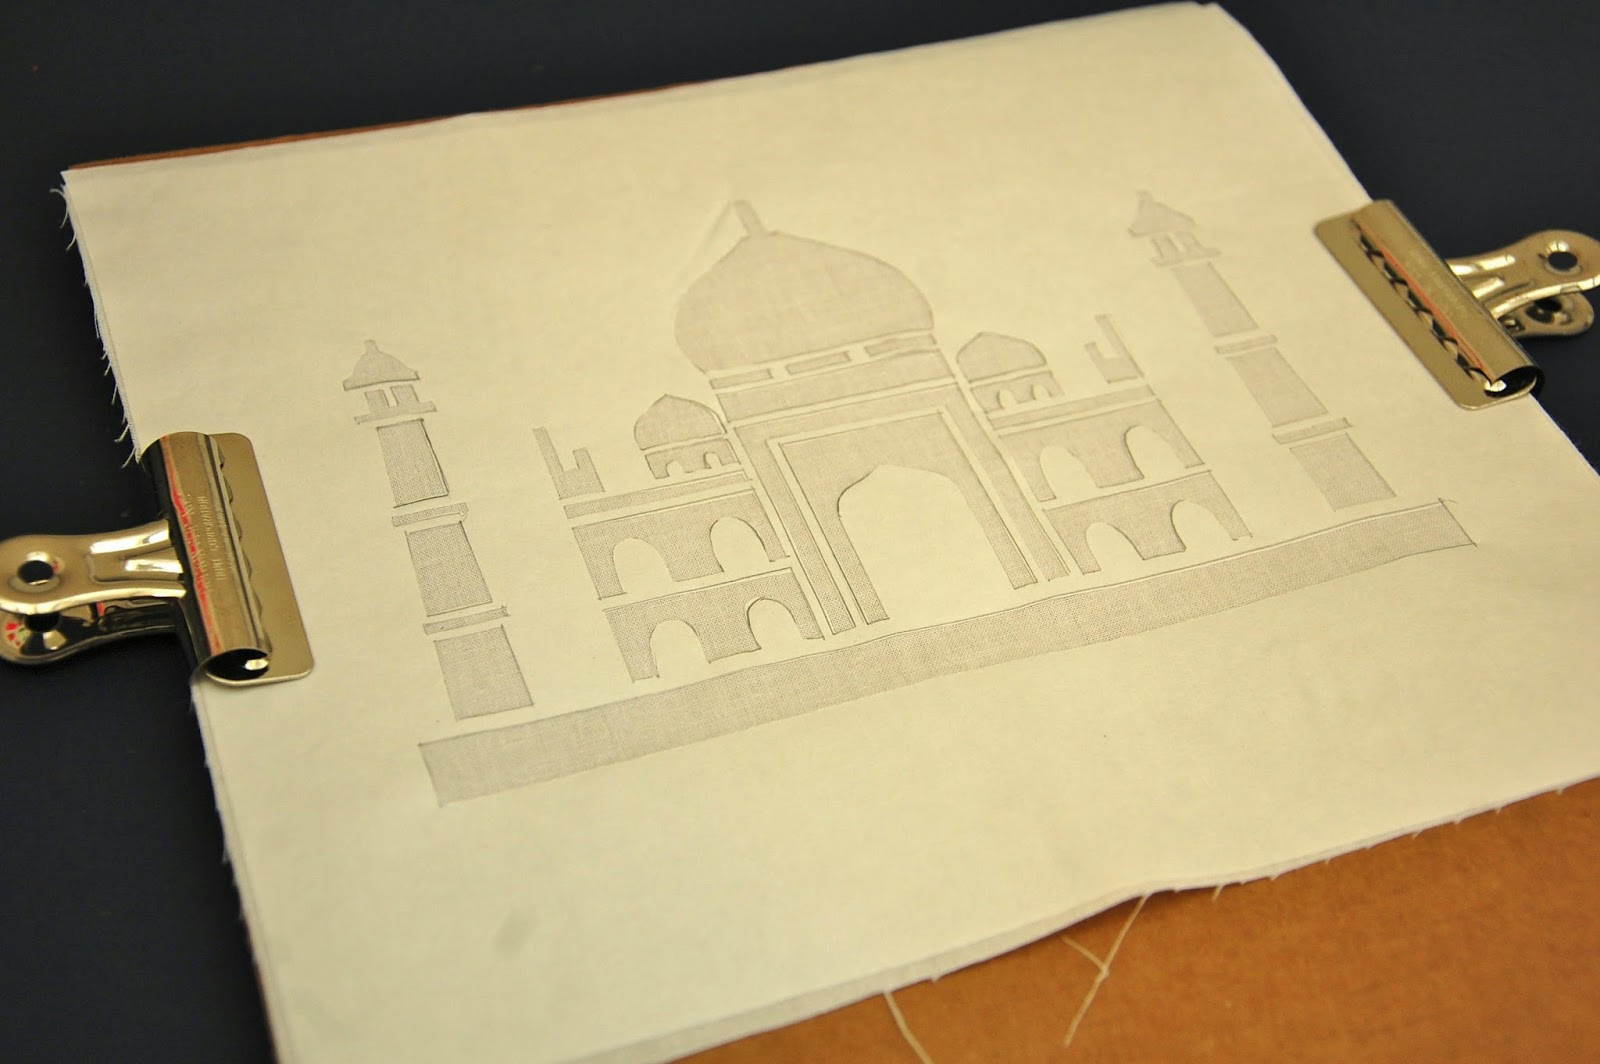 It's just an image of Crazy Printable Stencil Paper